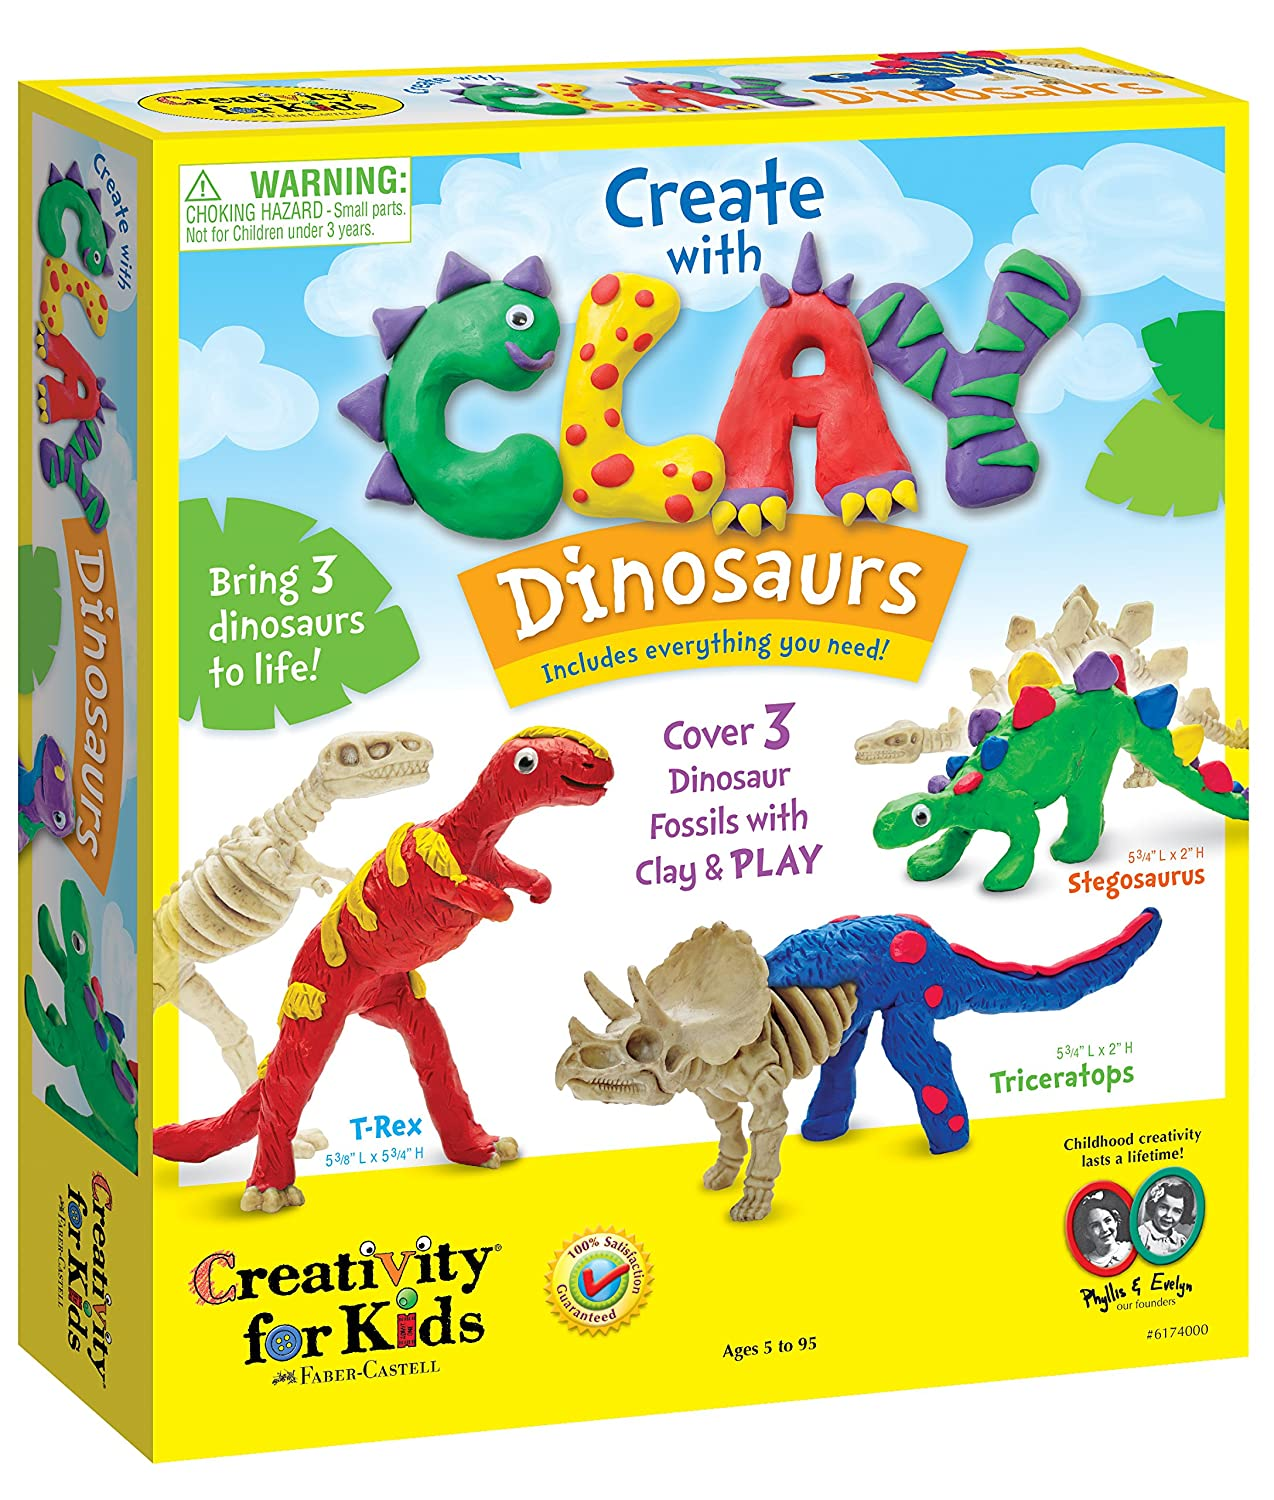 Creativity For Kids Create With Clay Dinosaurs   Build 3 Dinosaur Figures With Modeling Clay by Creativity For Kids